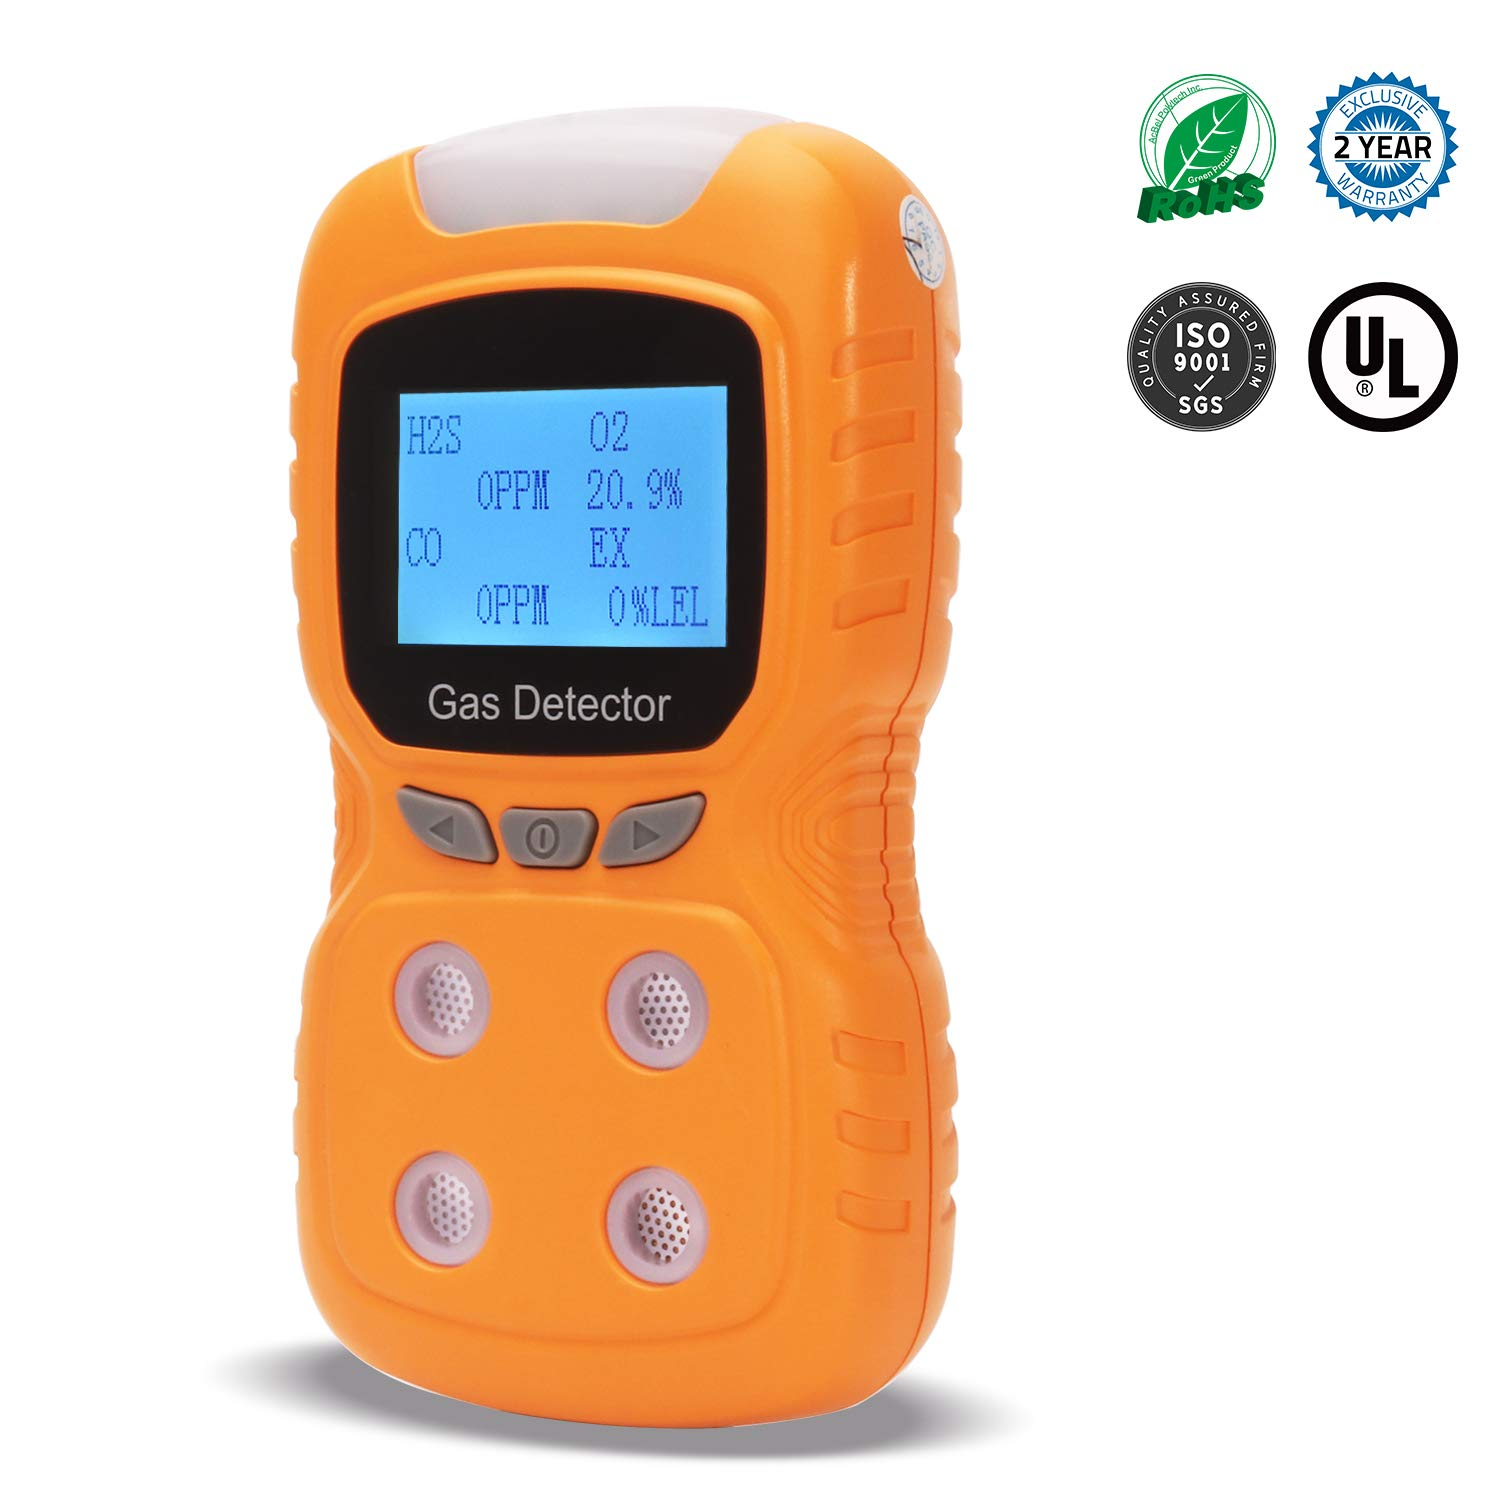 Portable Multi Gas Detector 4 in 1,Koabbit Handheld Air Quality Gas Monitor,Propane,Gas Leak Detector,LCD Backlight Display with Clear Voice Vibration Alarm, Rechargeable Battery, 2 Years Detector by KOABBIT